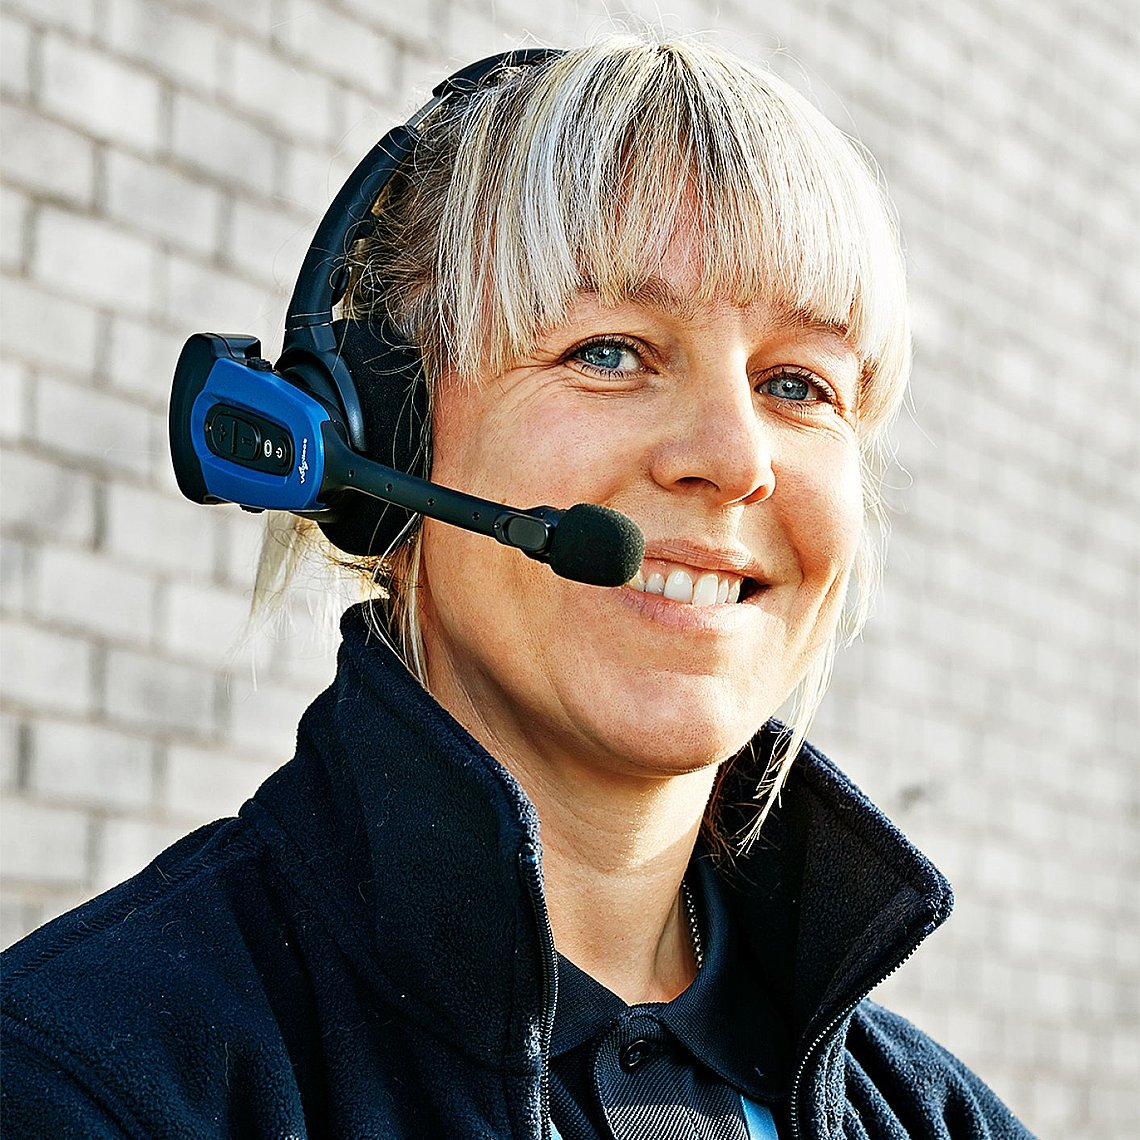 A smiling woman wearing a headset